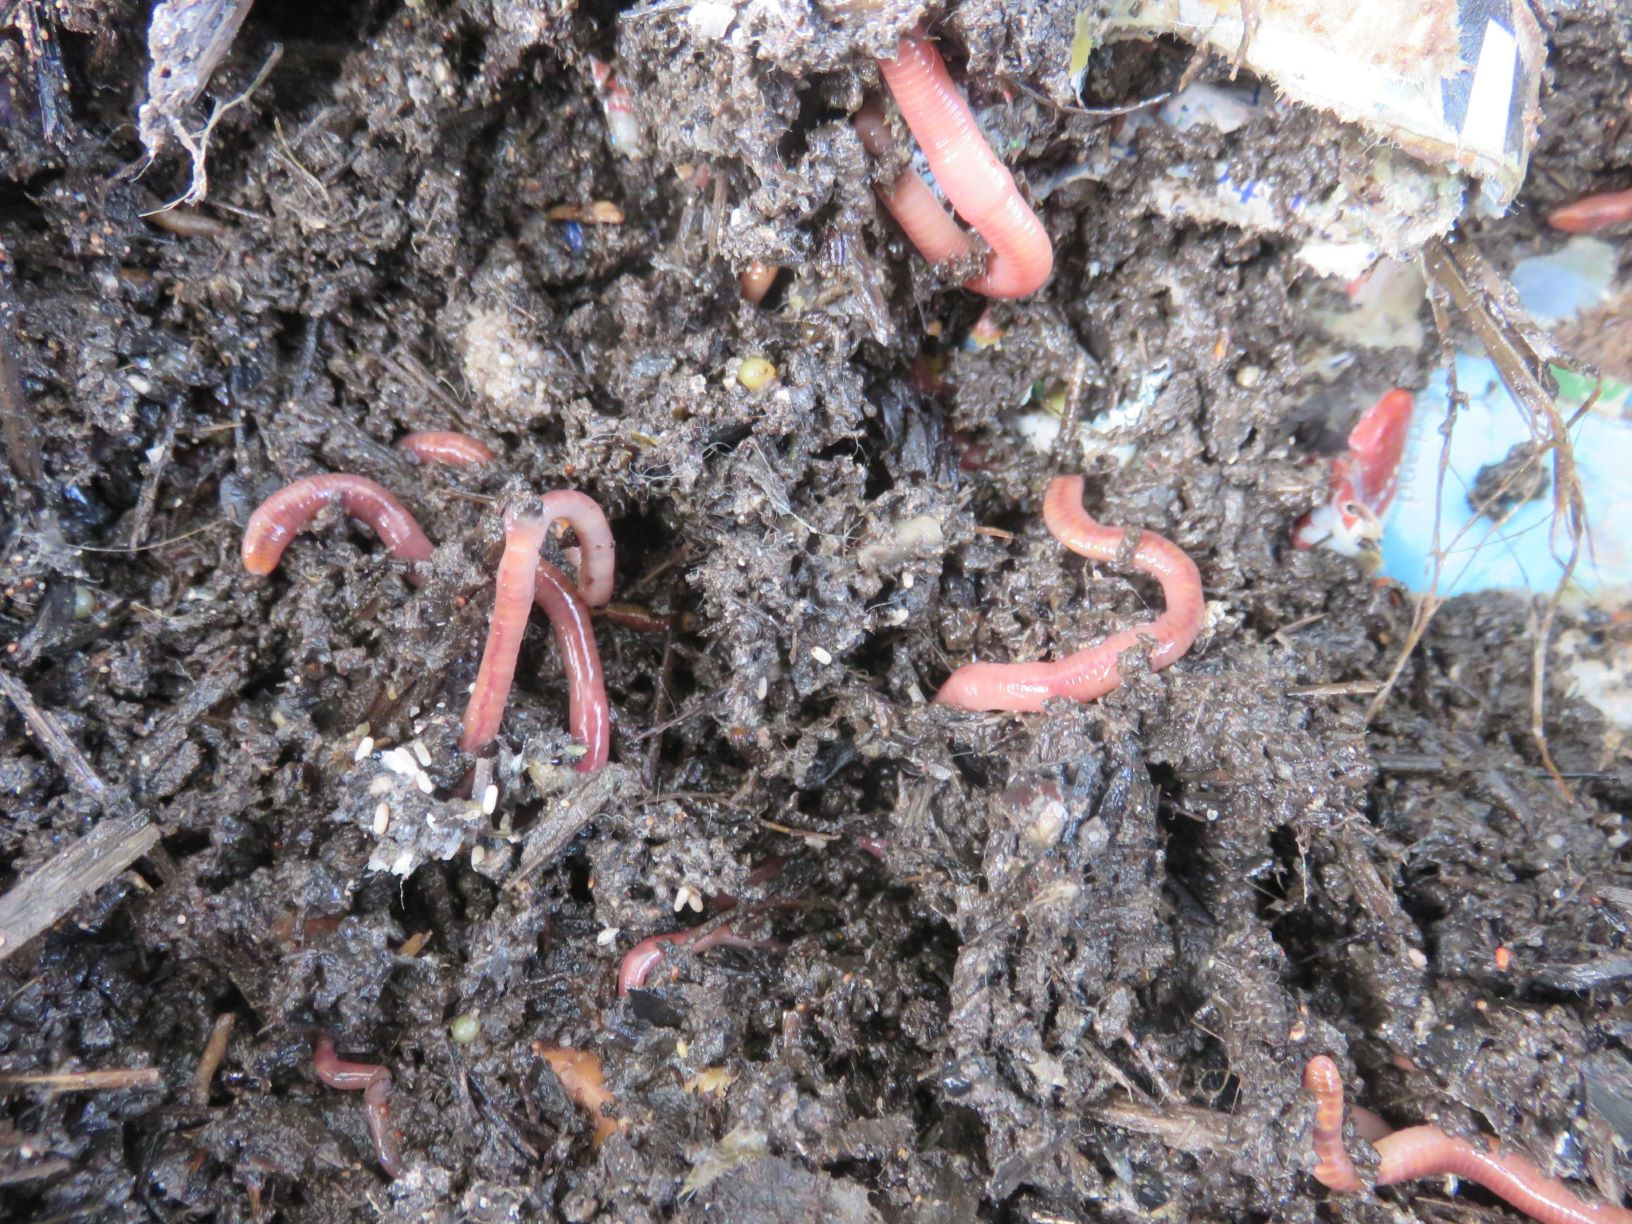 worms in my earth worm filter this morning